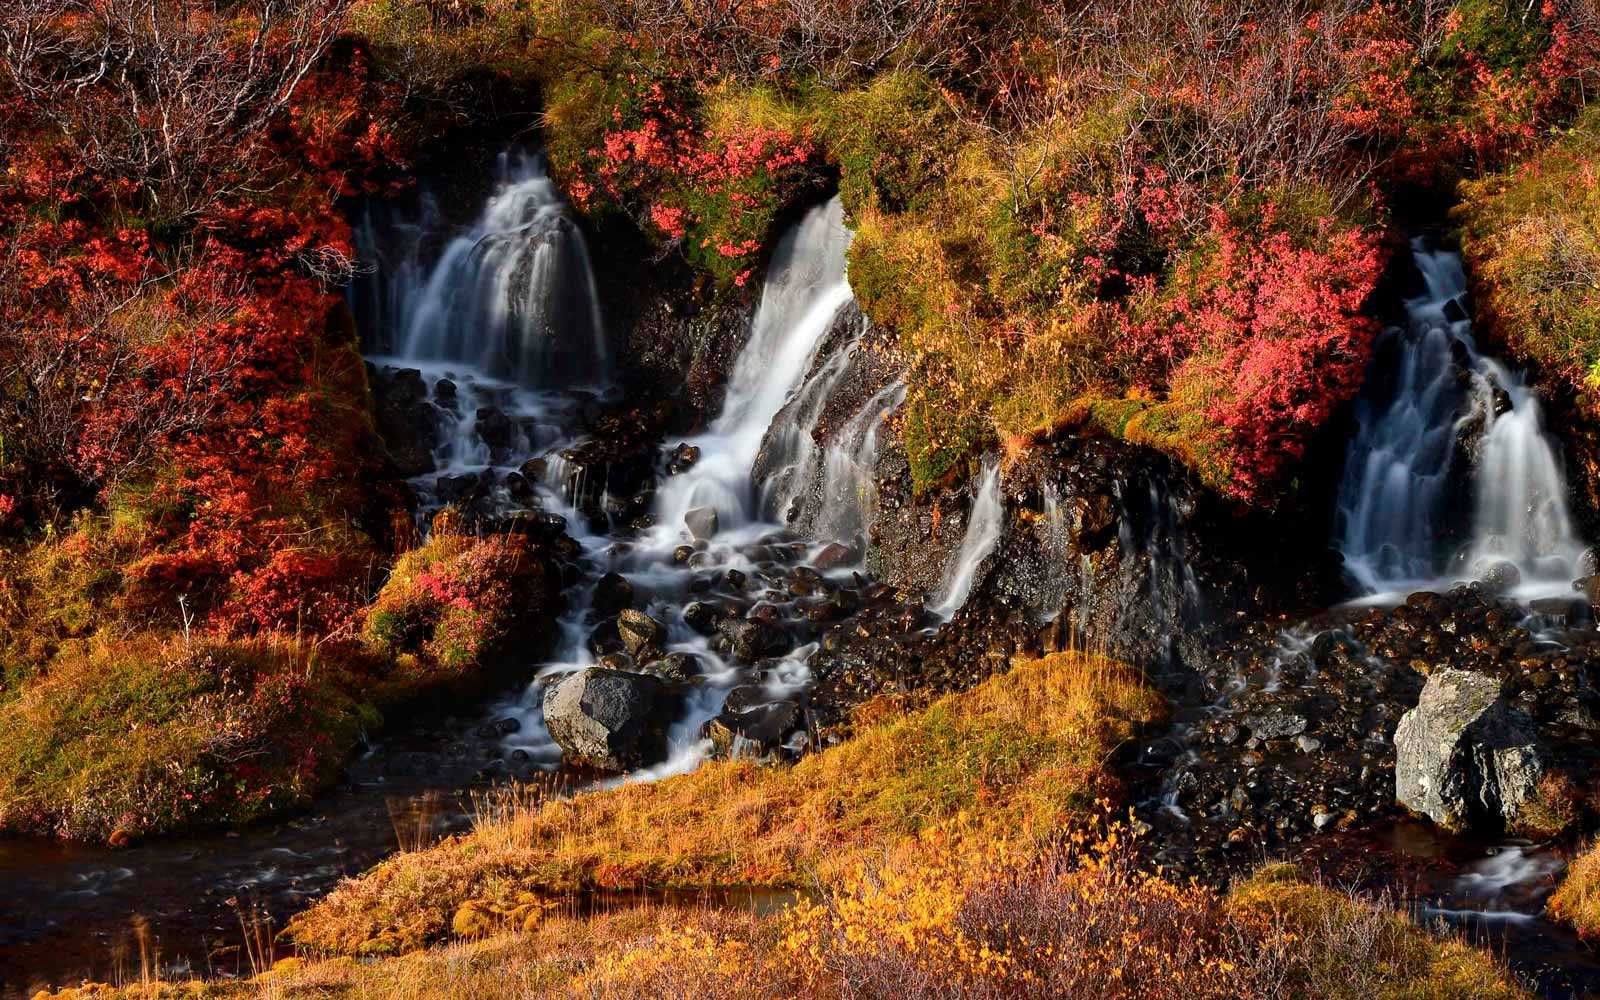 Hraunfossar waterfall, Iceland. Autumn colorful landscape